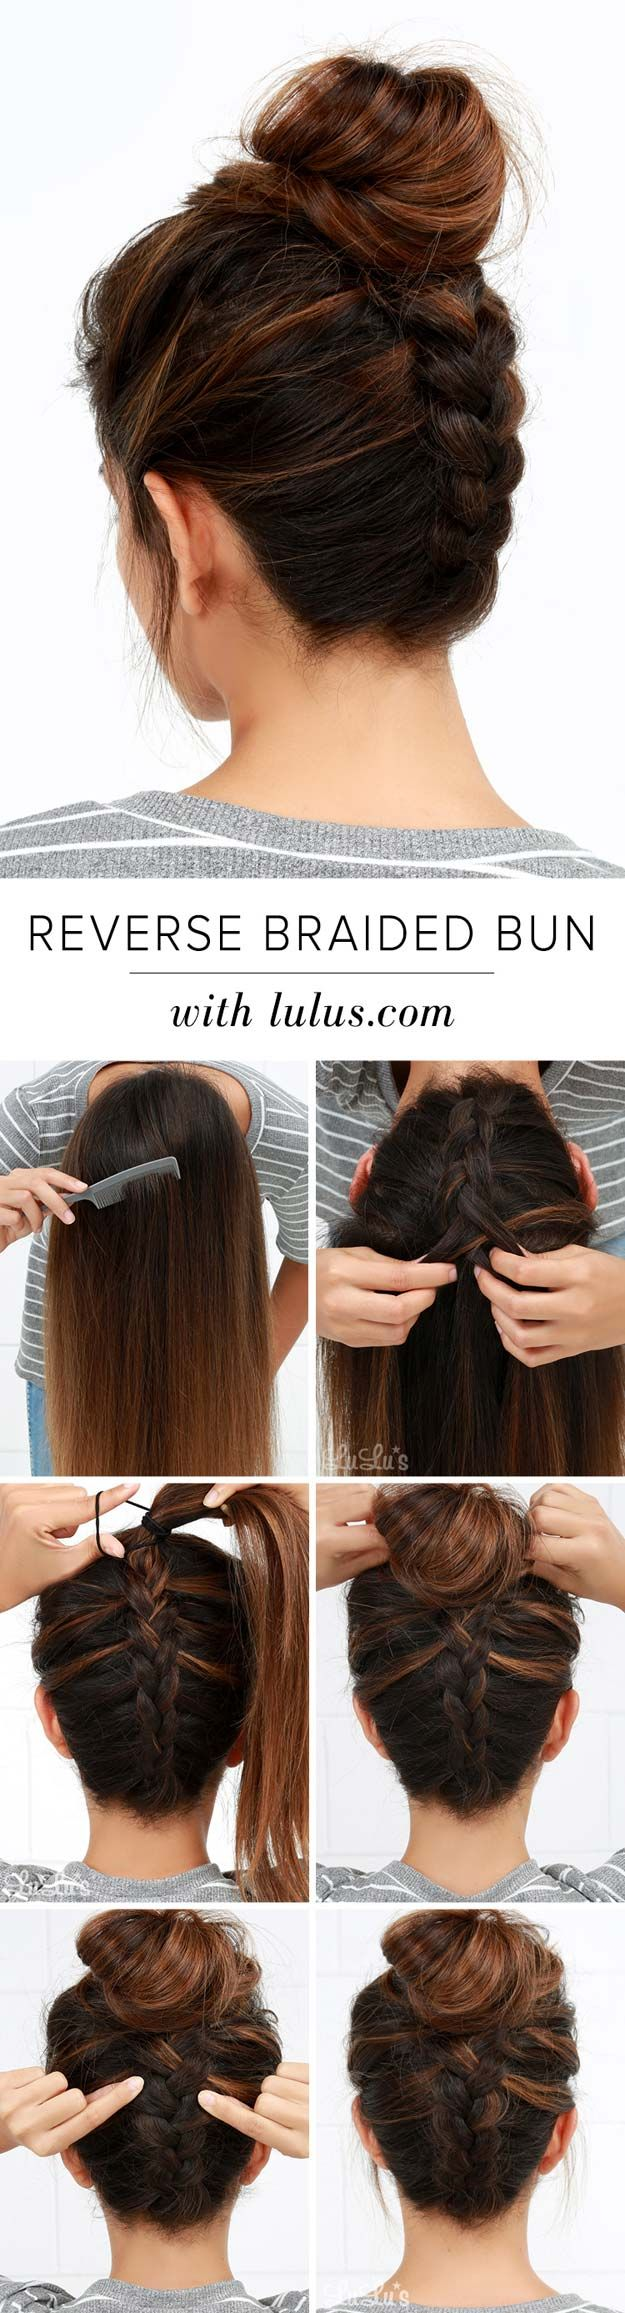 best 25+ hair ideas for school ideas on pinterest | school hair